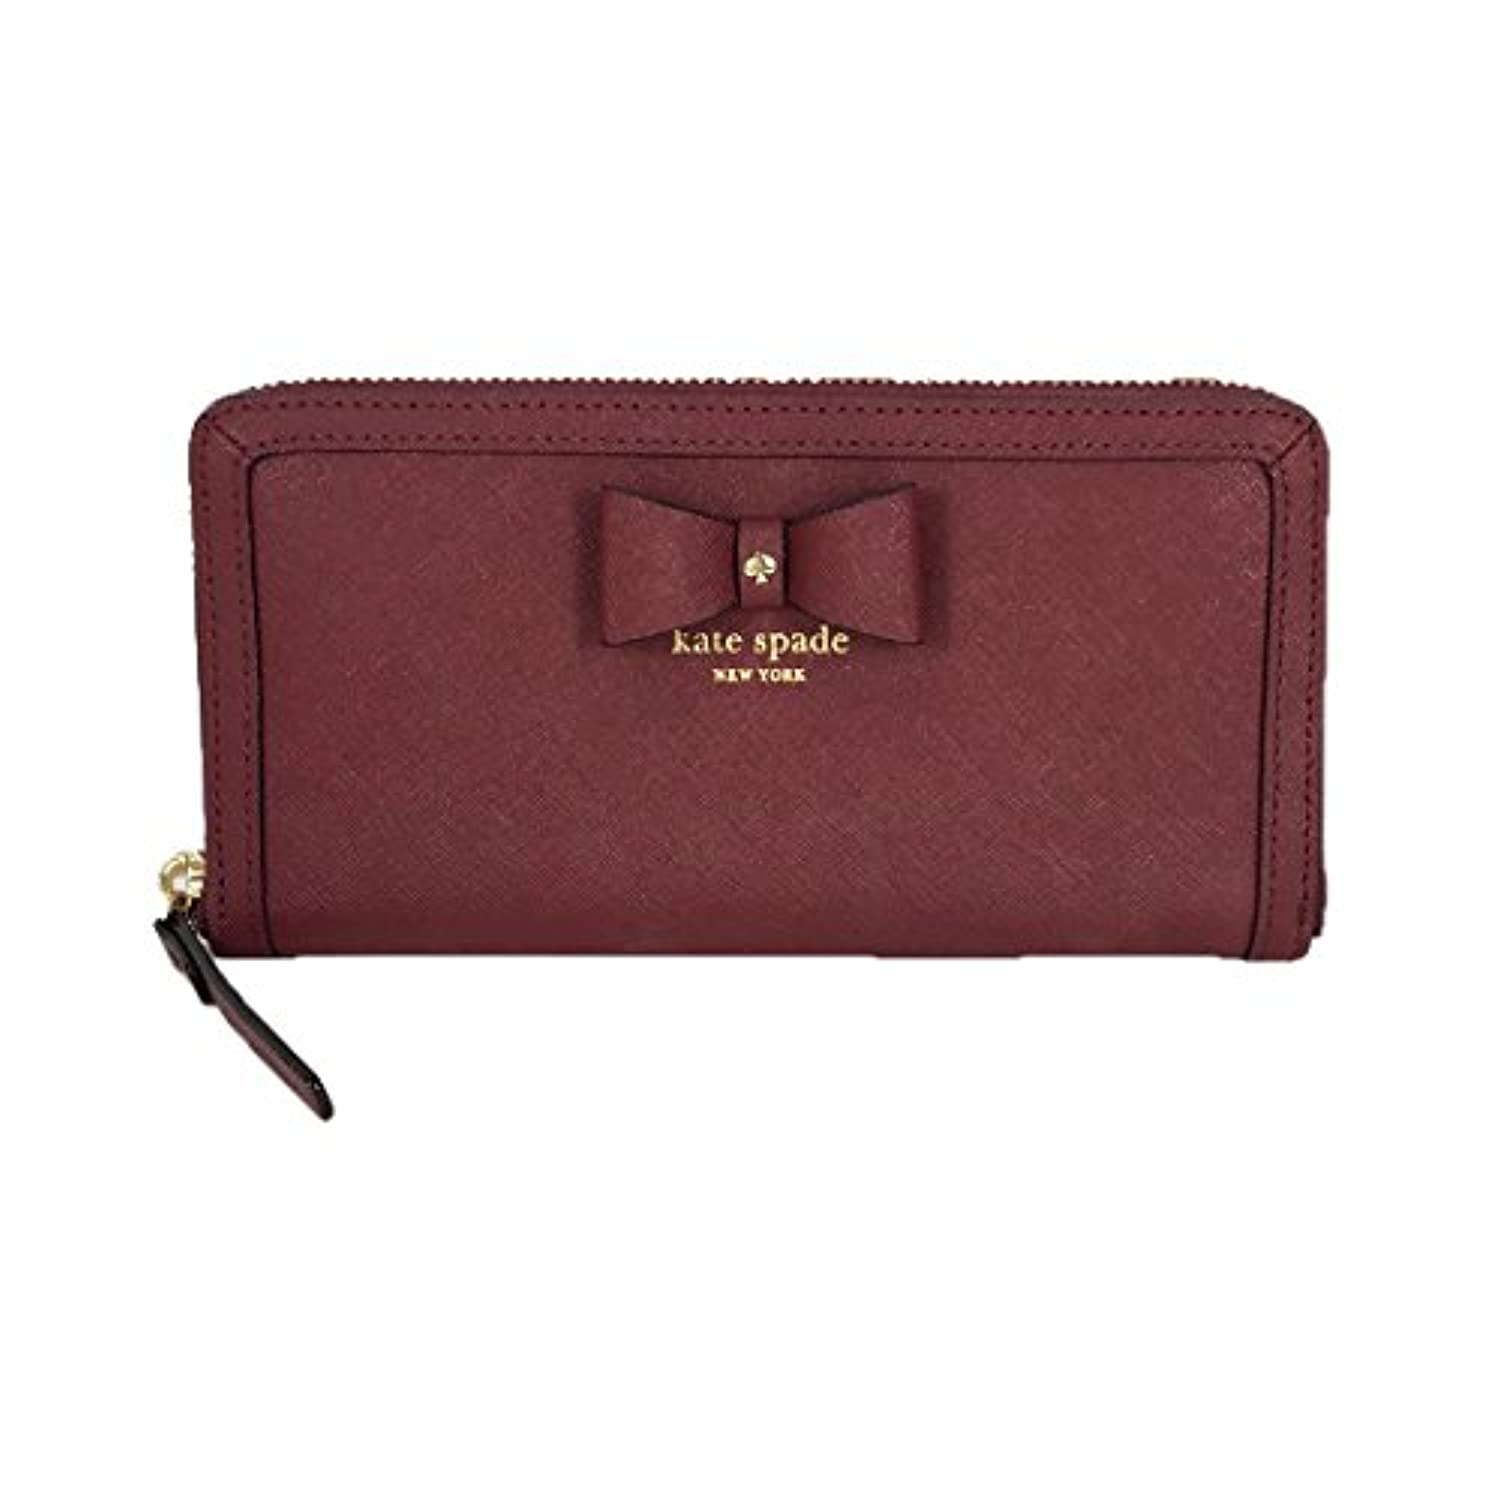 Kate Spade New York ACCESSORY レディース US サイズ: One Size カラー: レッド